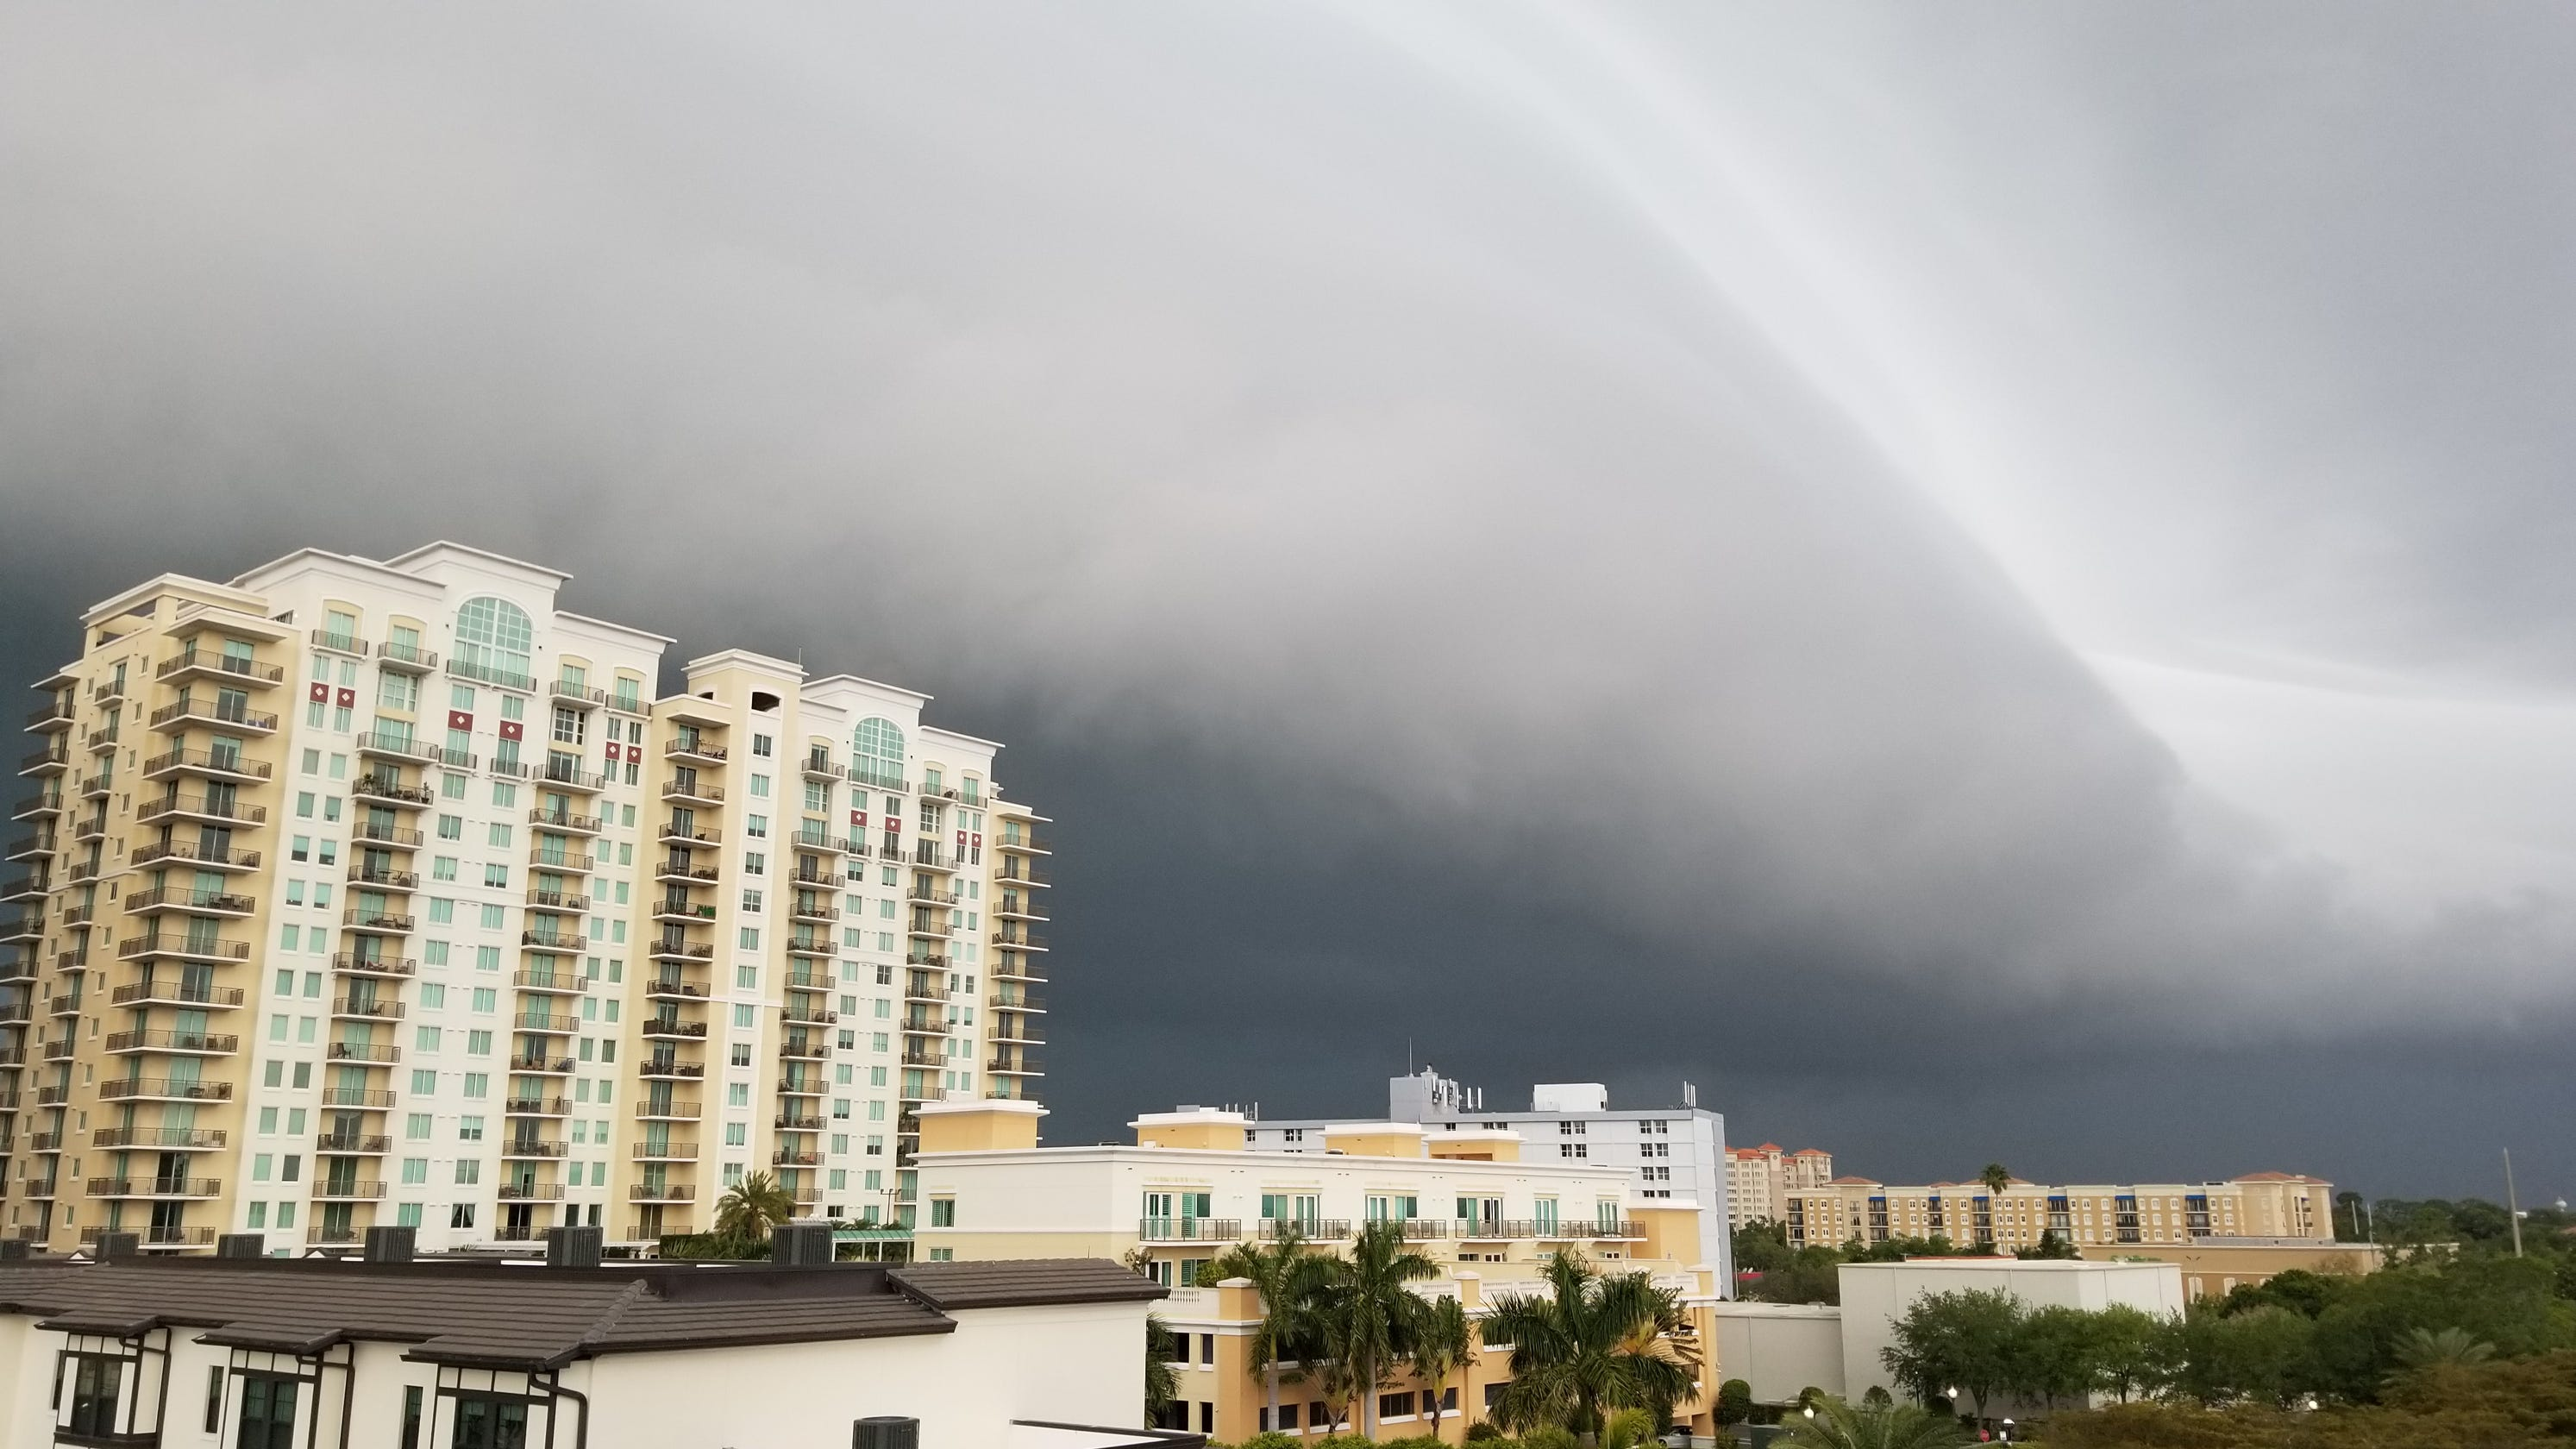 'Really unbelievable': Severe storms in South leave at least 3 dead, thousands without power in Florida